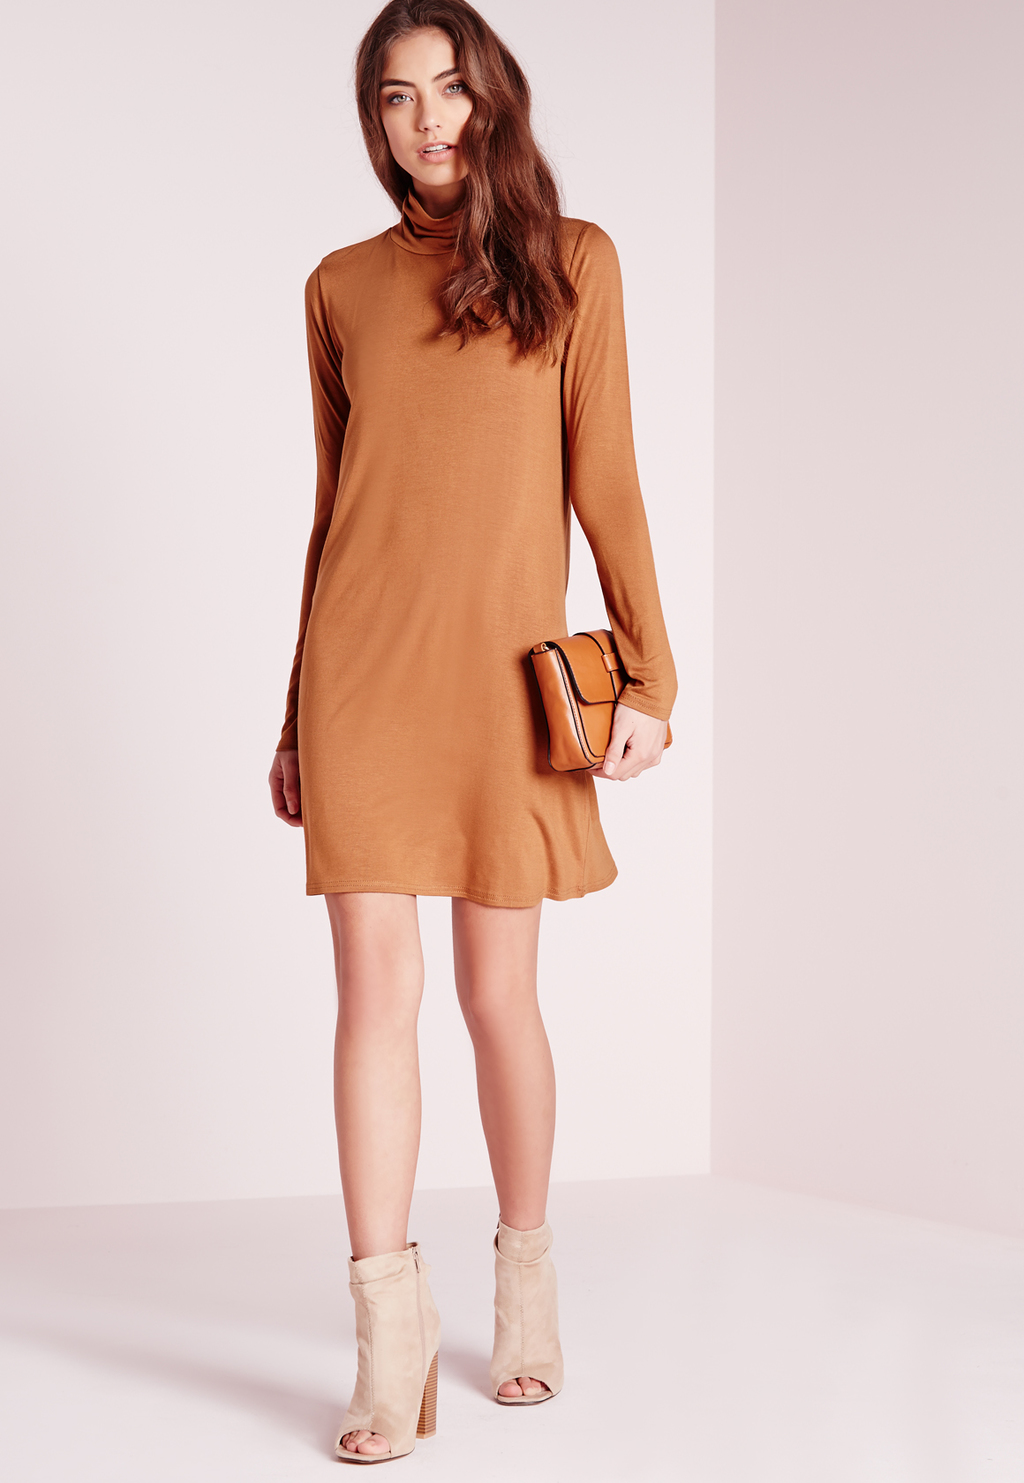 Roll Neck Jersey Swing Dress Rust, Brown - style: tunic; length: mid thigh; fit: loose; pattern: plain; neckline: roll neck; predominant colour: camel; occasions: evening; fibres: polyester/polyamide - 100%; sleeve length: long sleeve; sleeve style: standard; pattern type: fabric; texture group: jersey - stretchy/drapey; season: s/s 2016